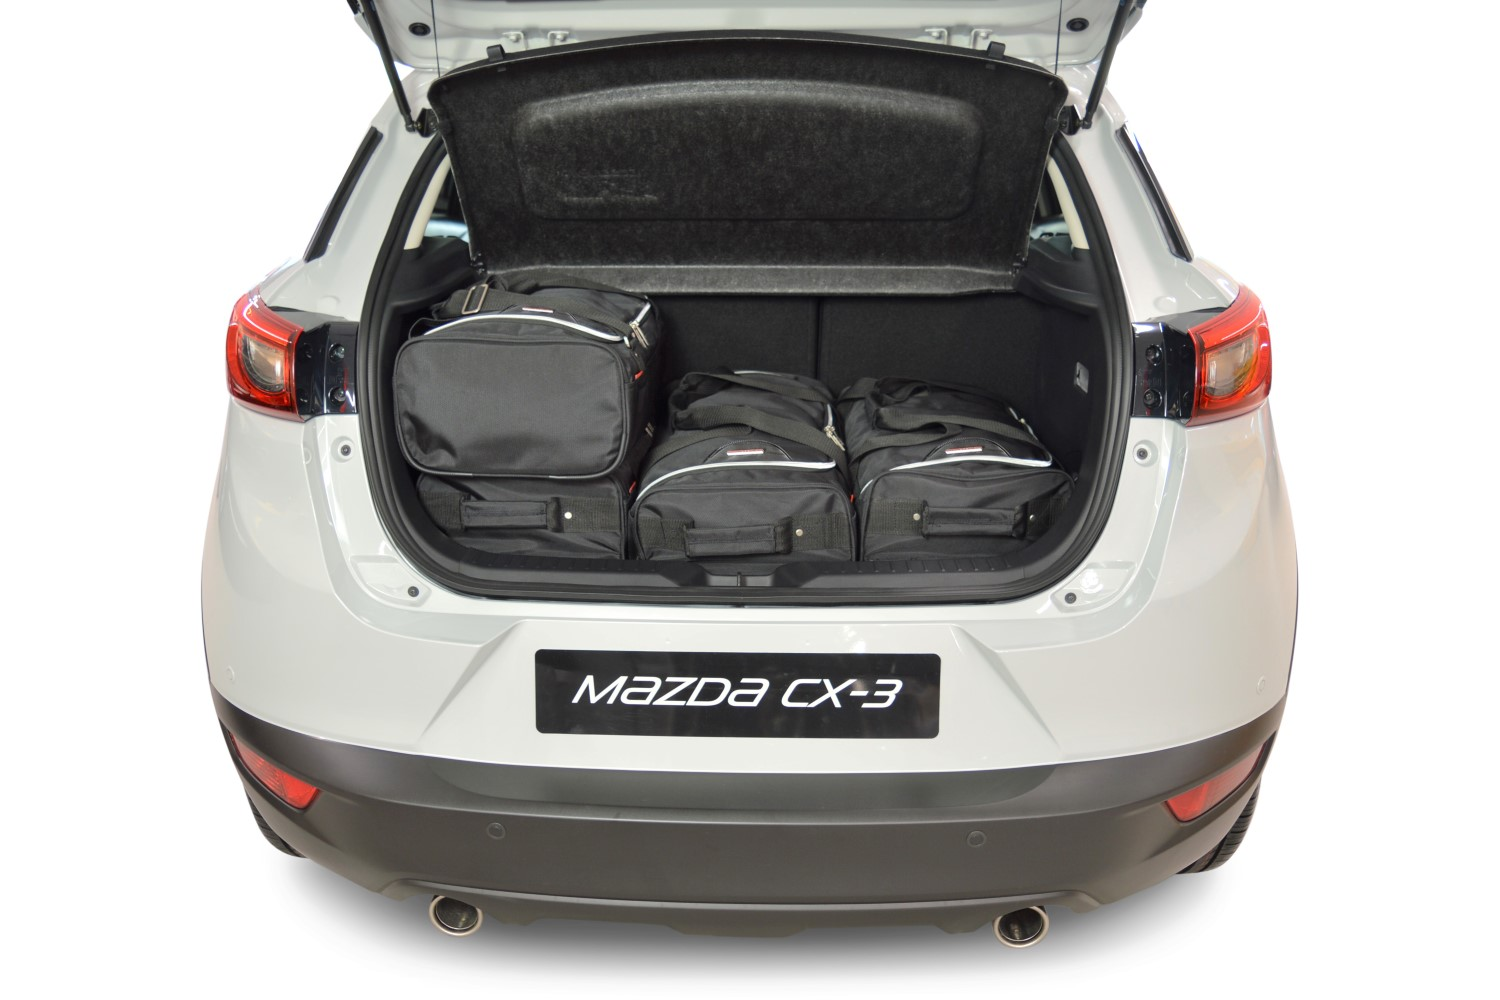 cx 3 mazda cx 3 2015 nuvarande suv car bags resv skor. Black Bedroom Furniture Sets. Home Design Ideas